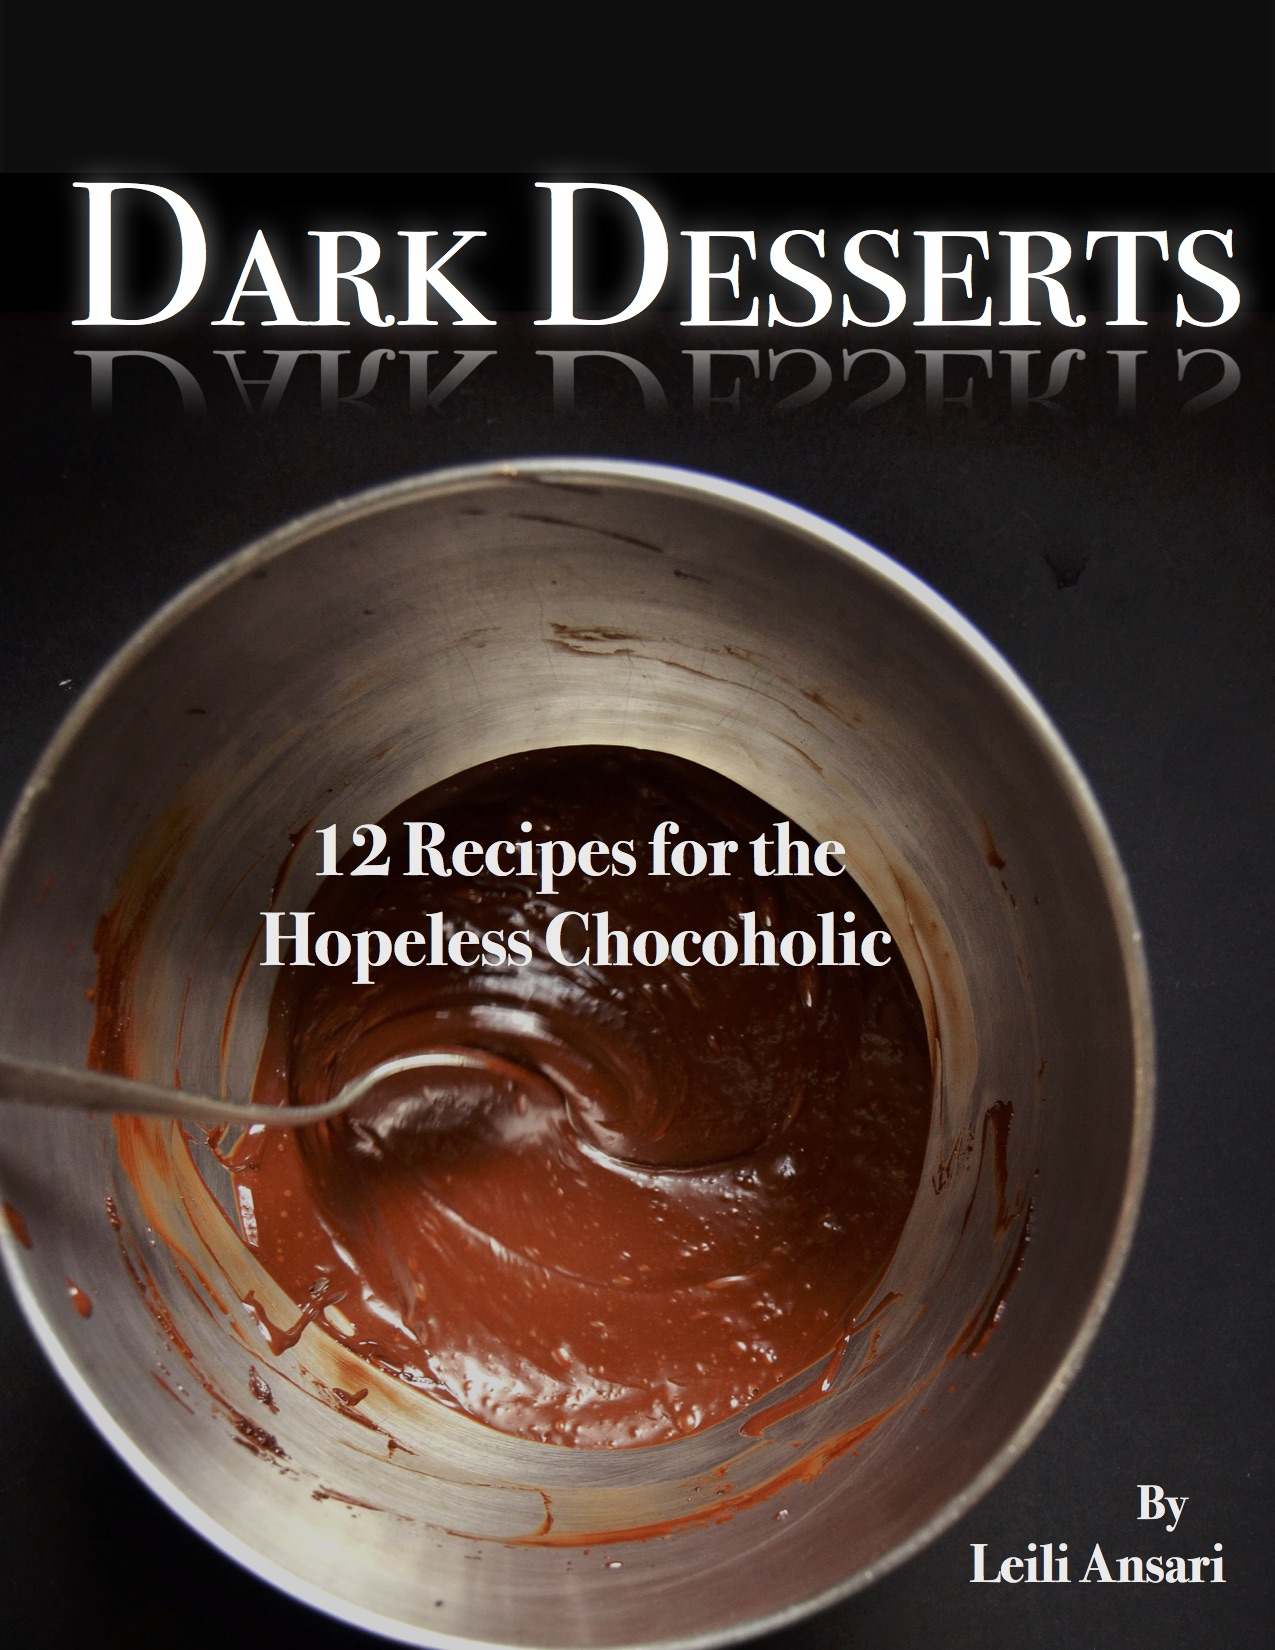 Dark Desserts: 12 Decadent Chocolate Desserts – FREE EBOOK